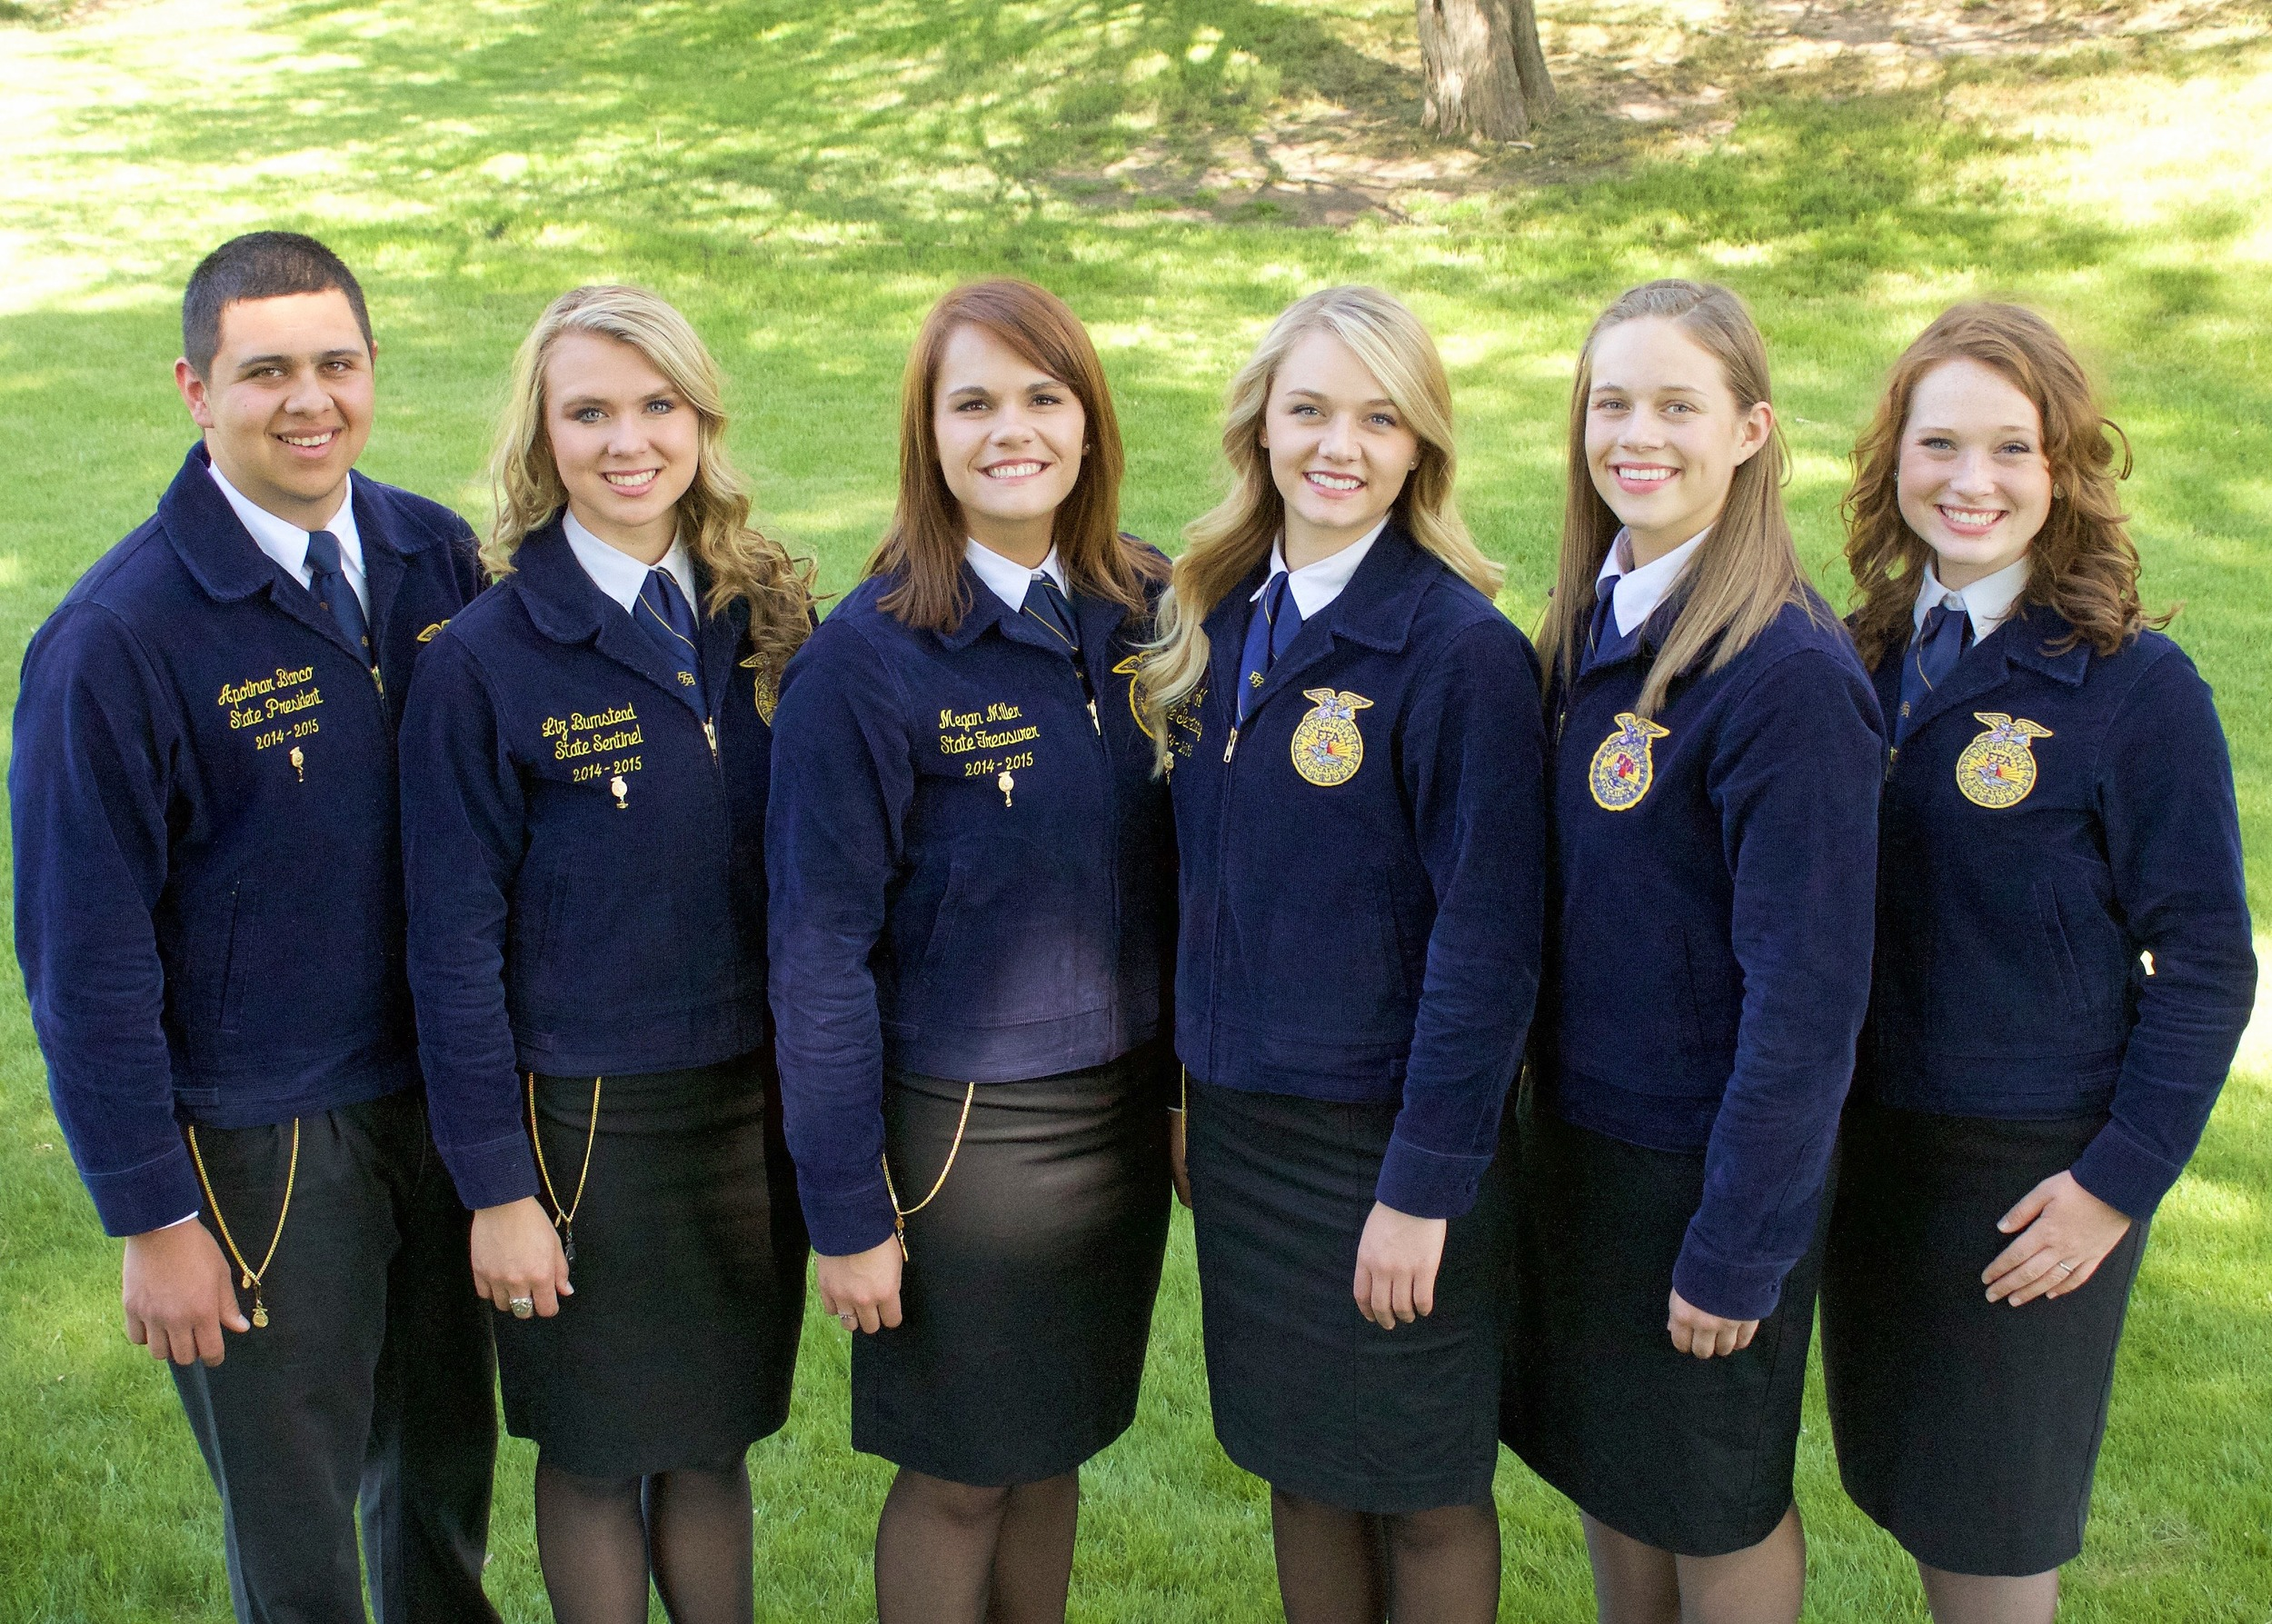 From left to right: President Apolinar Blanco, Sentinel Liz Bumstead, Treasurer Megan Miller, Secretary Maya Wahl, Vice President Rebecca Foote, Reporter Sam Brown